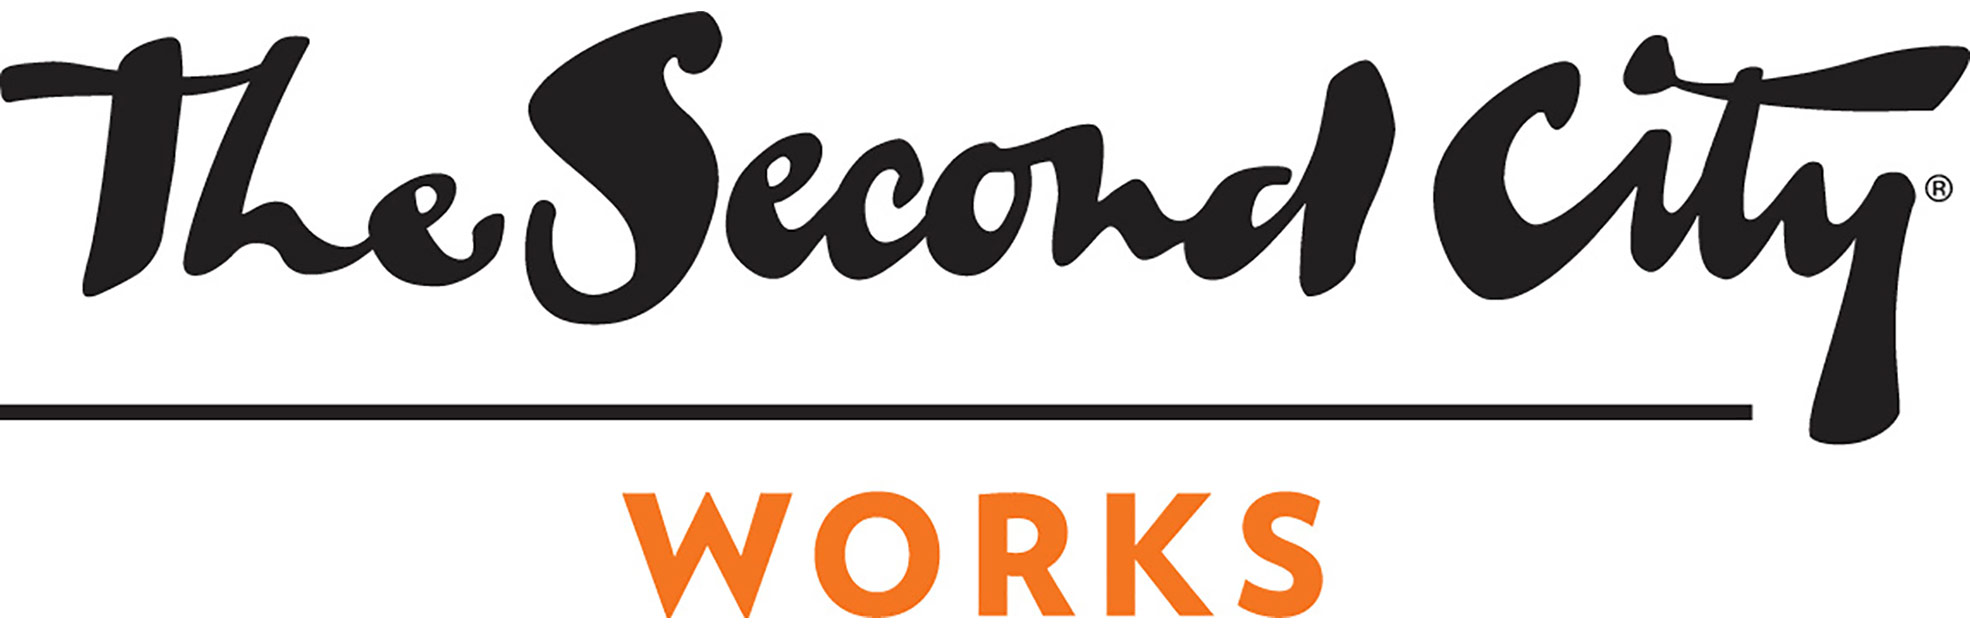 Image of SECOND CITY WORKS